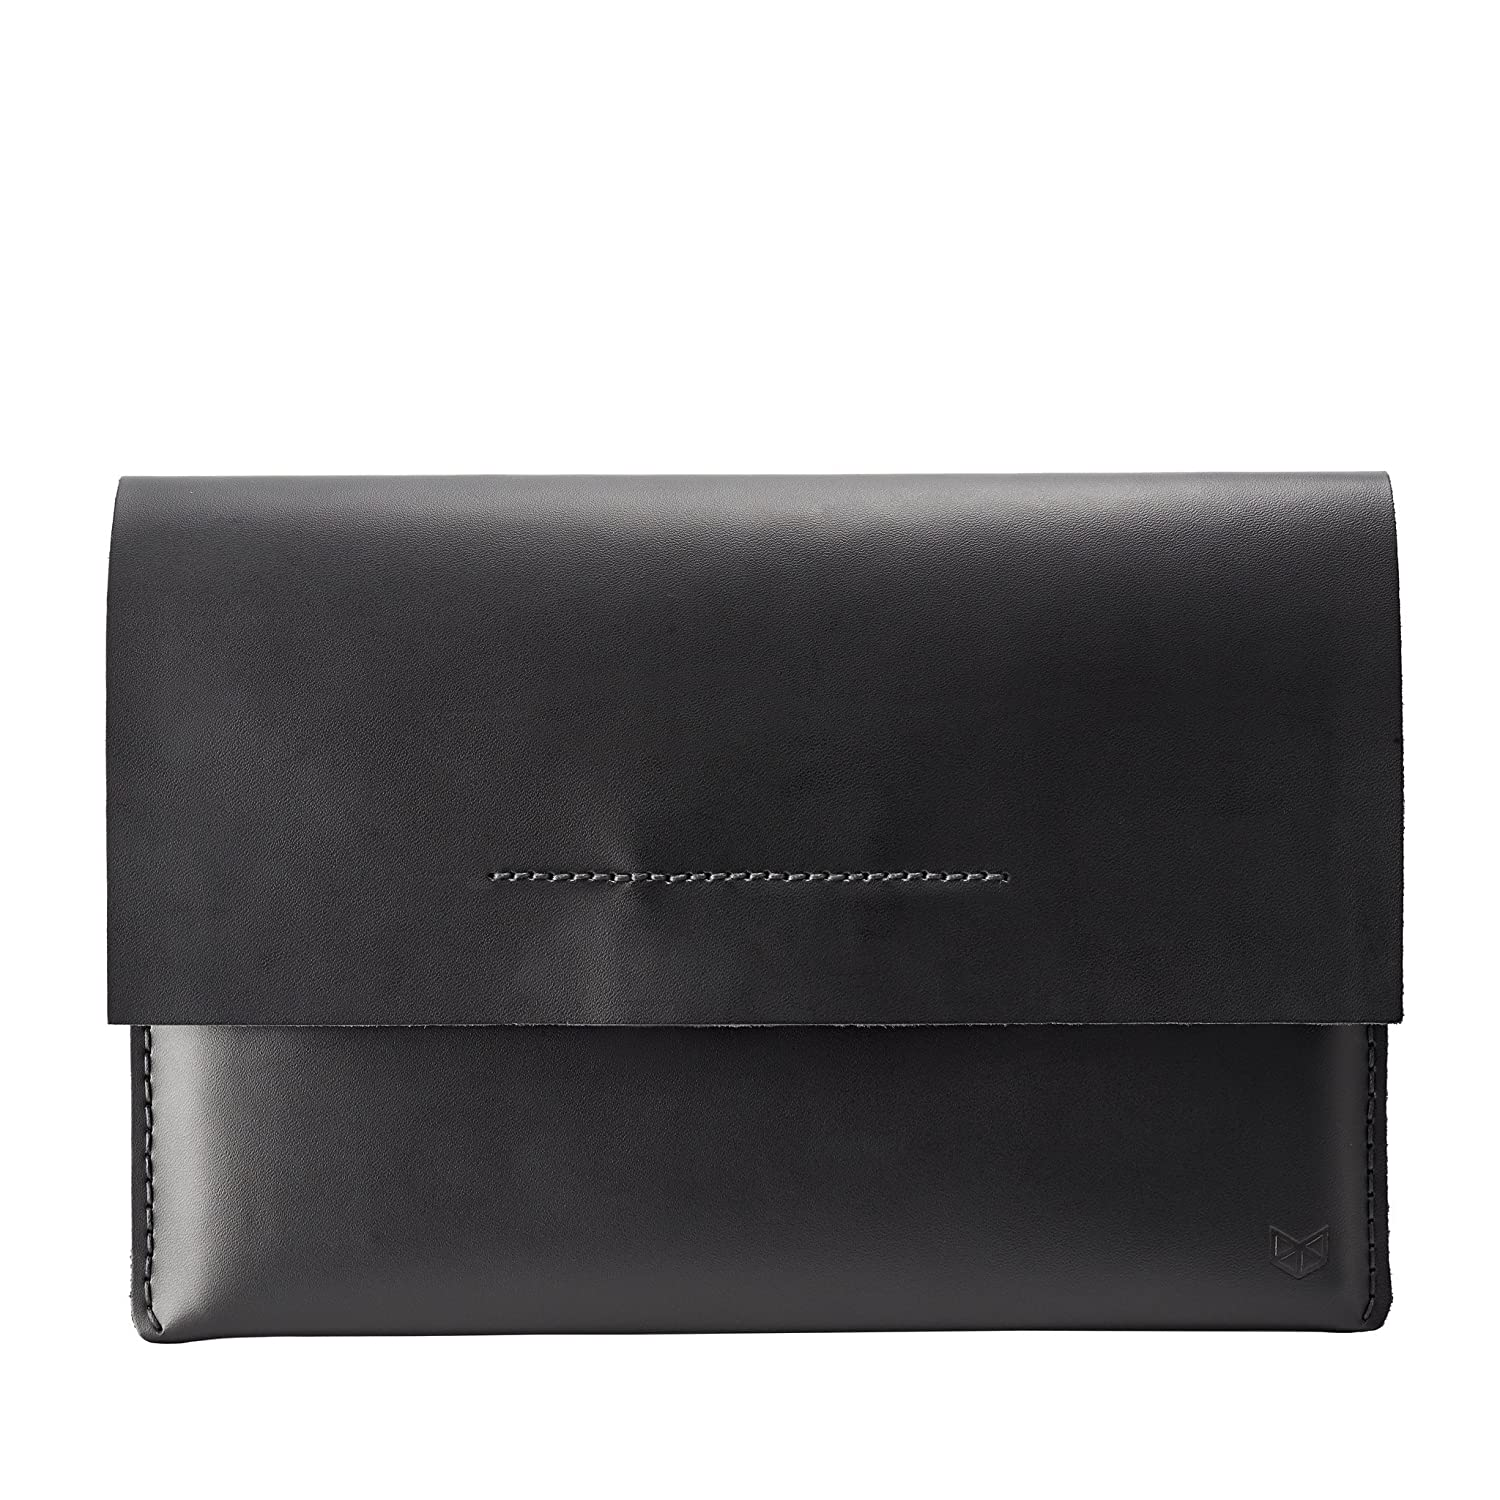 Black Leather Travel Laptop Sleeve Bag Capra Leather ASUS ZenBook Pro Duo Sleeve Case for Men Mens Gift Protective ASUS Folio Cover